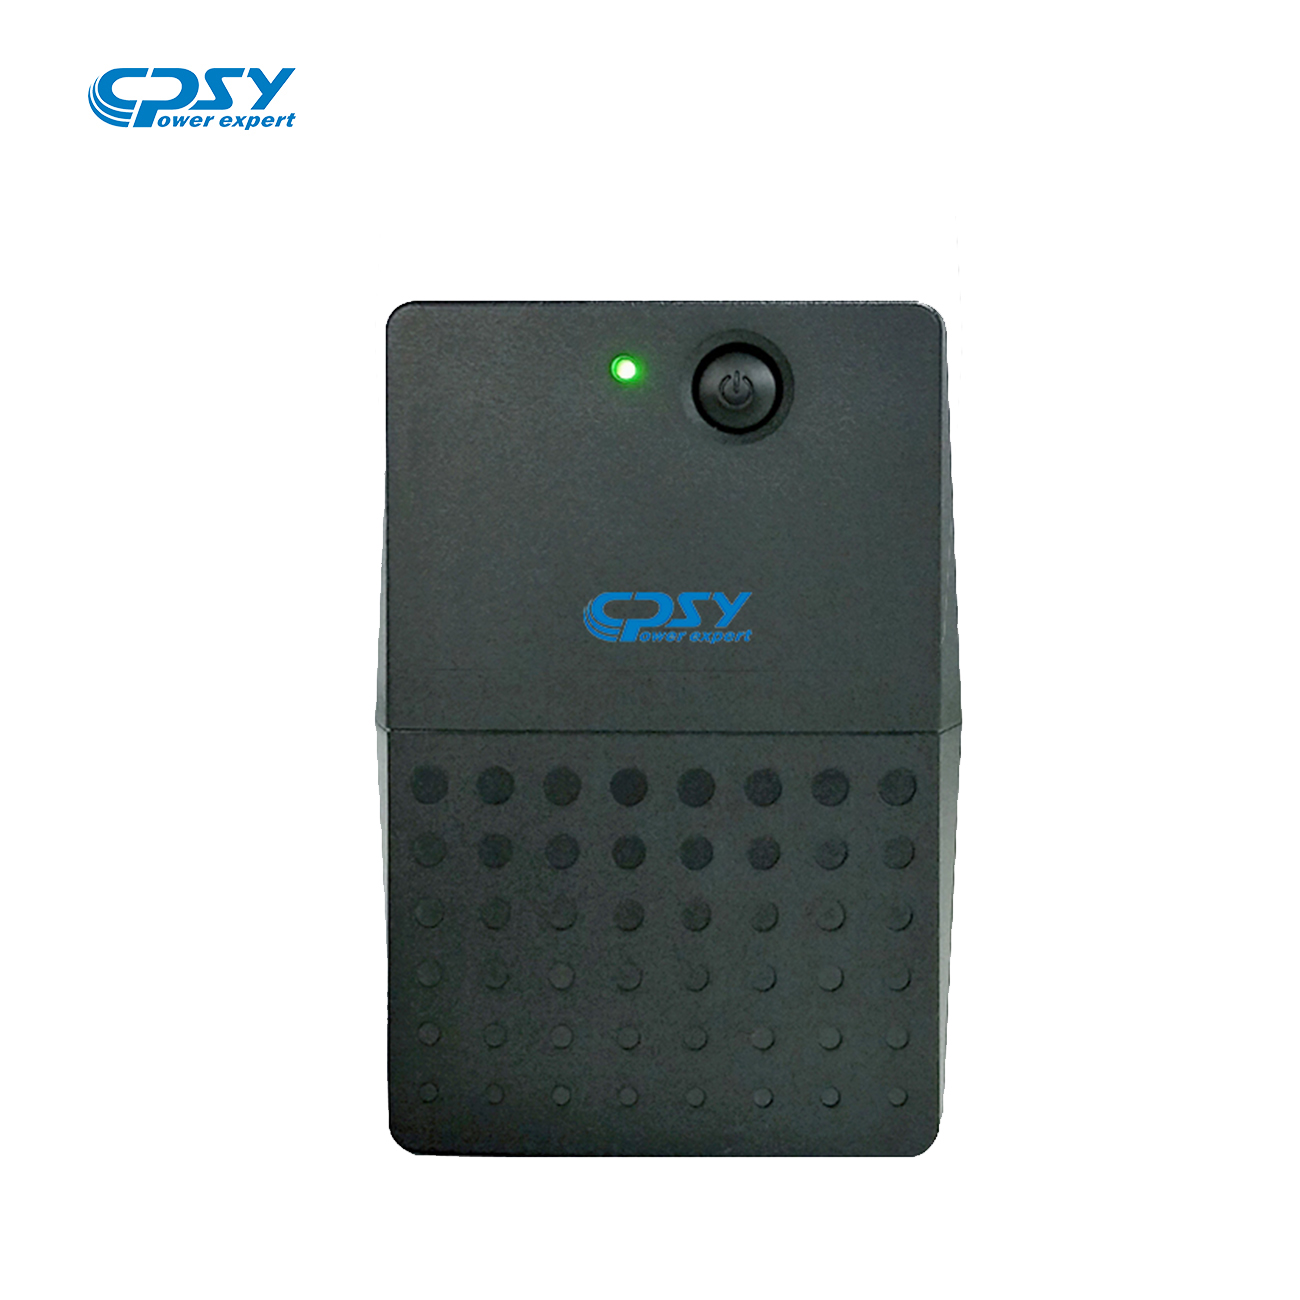 OEM High Quality Offline UPS 600VA Line Interactive UPS With 1 Hour Backup